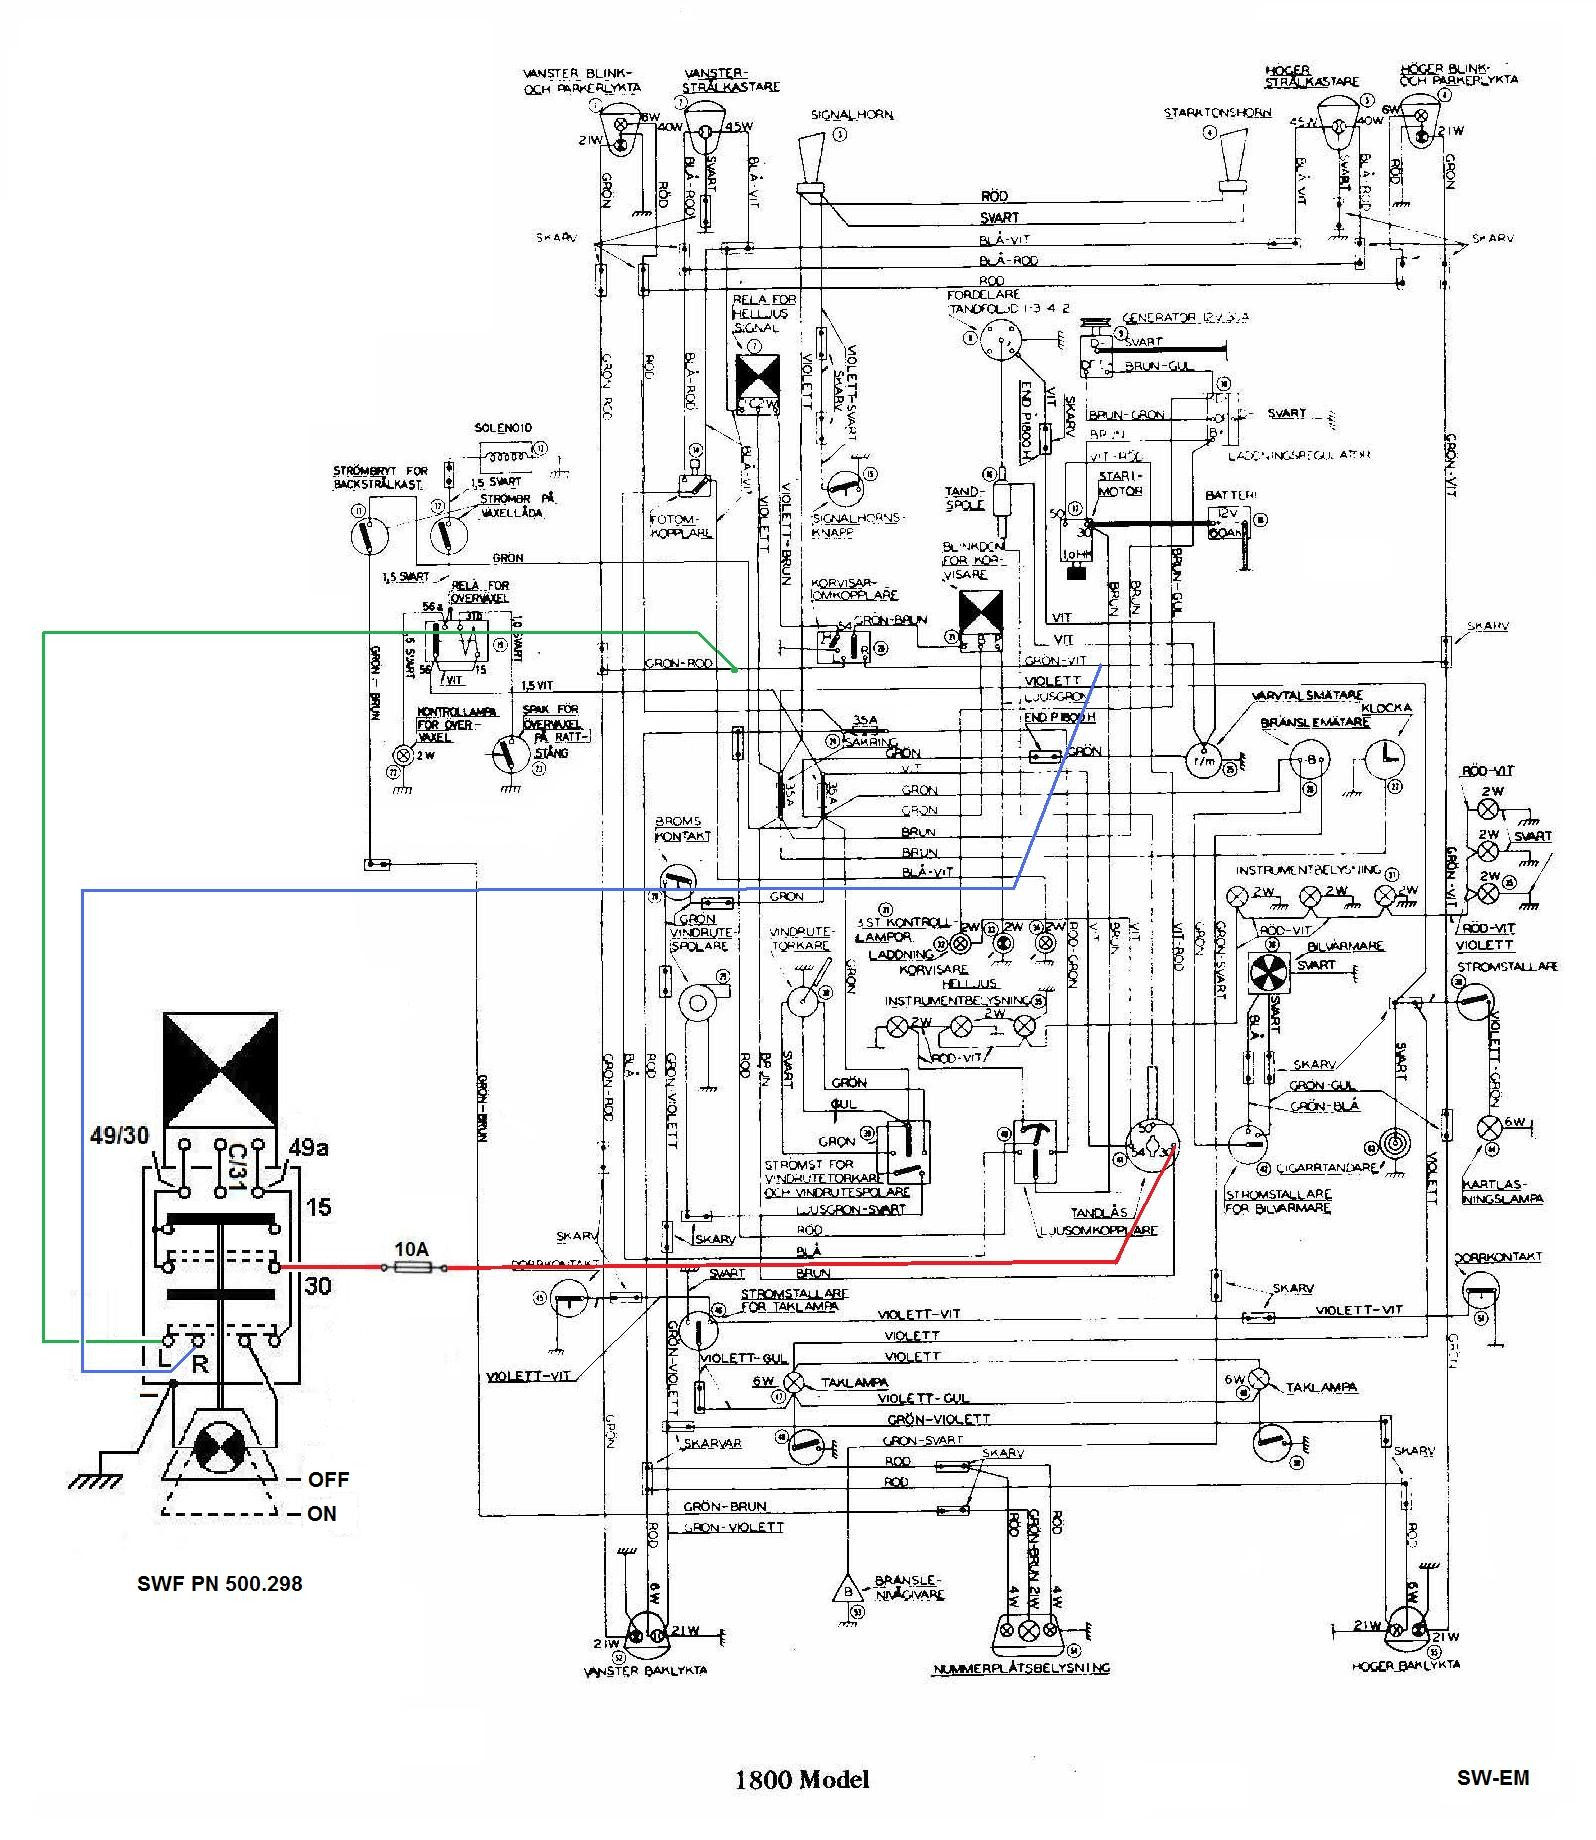 Turn Signal Flasher Schematic Sw Em Emergency Flasher